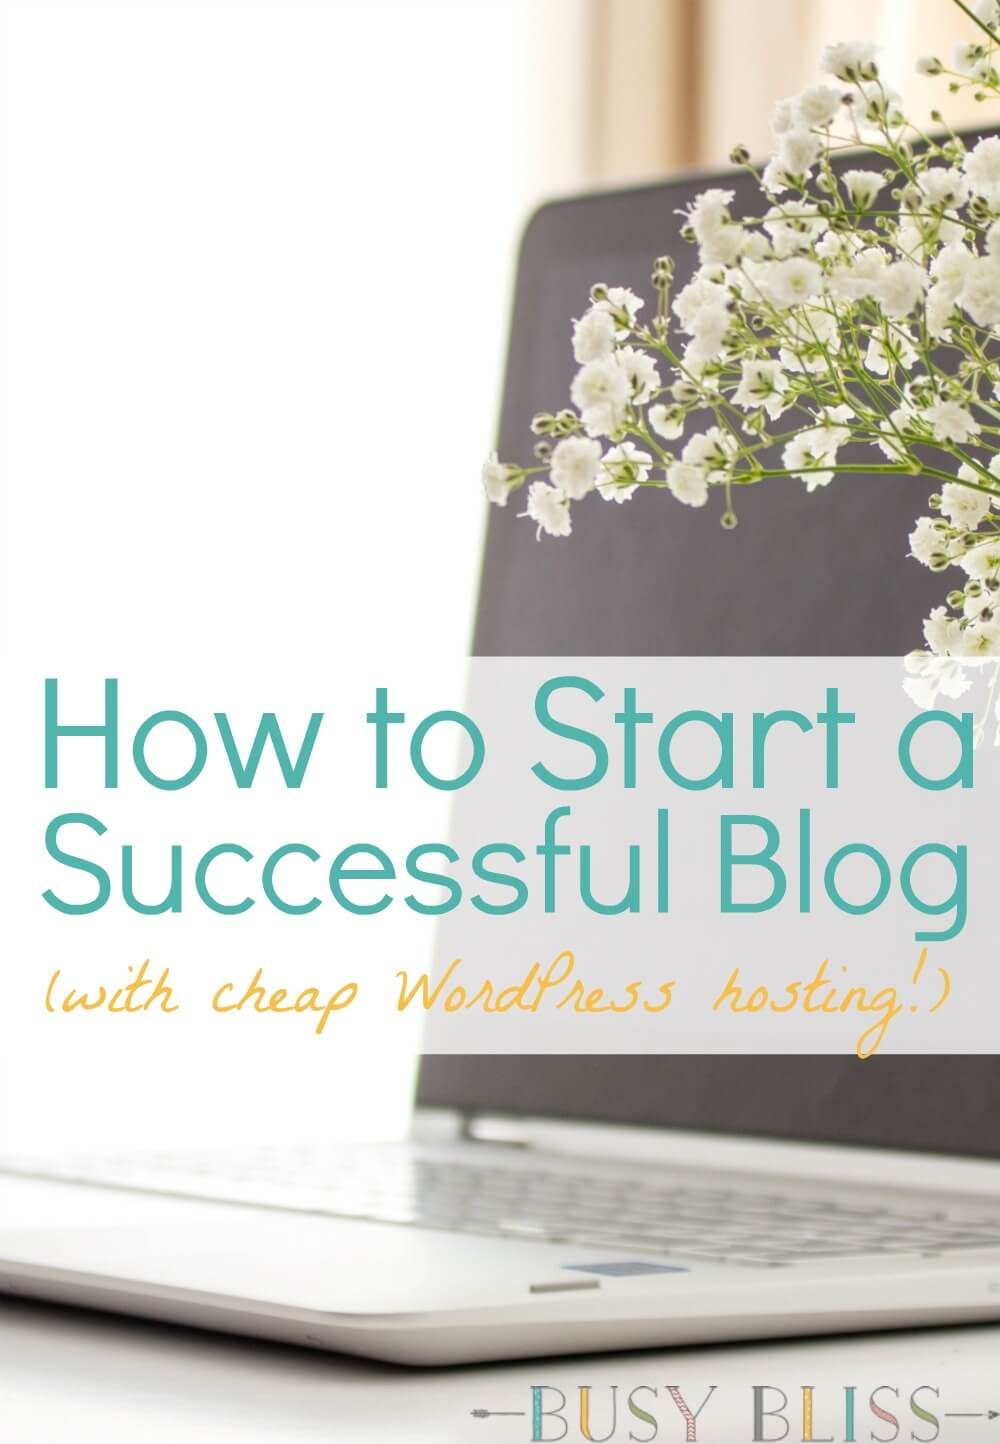 The first step to start a successful blog is finding cheap WordPress hosting. This post will take you step by step through setting up your hosting to get you started with your blog.